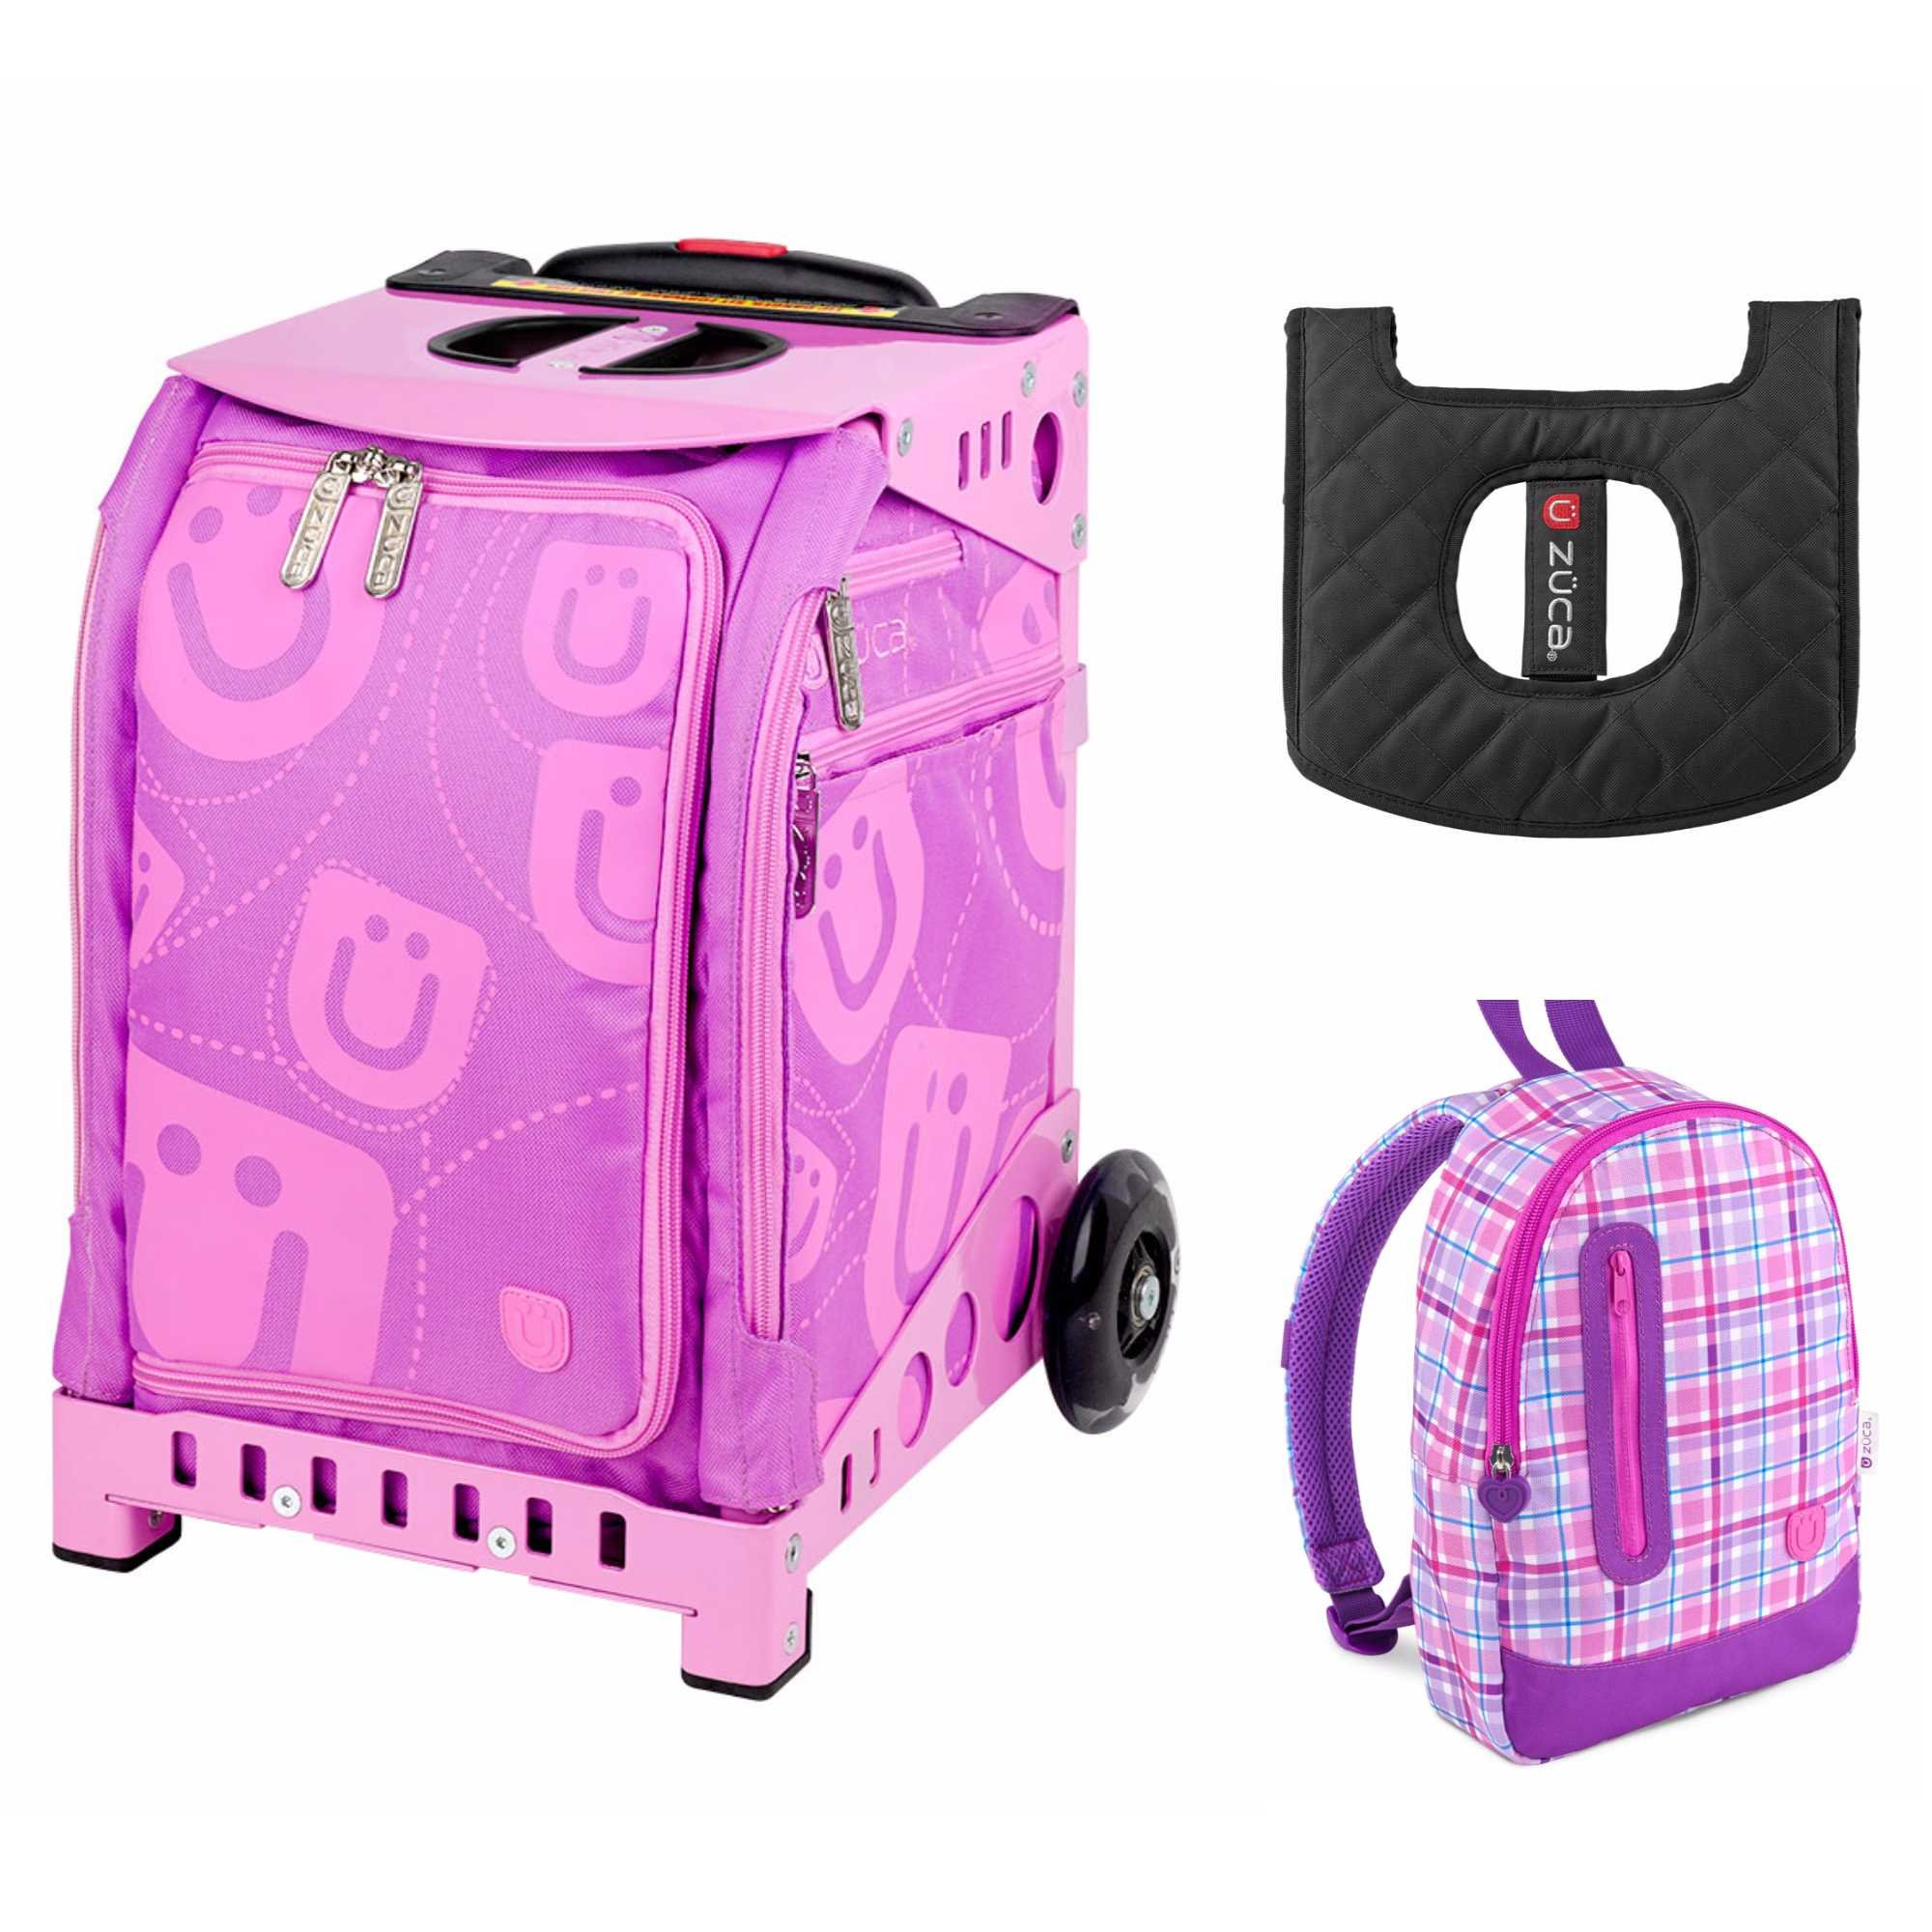 ZUCA Kids' Mini Smile Bag / Pink Frame + Backpack and Seat Cushion by ZUCA